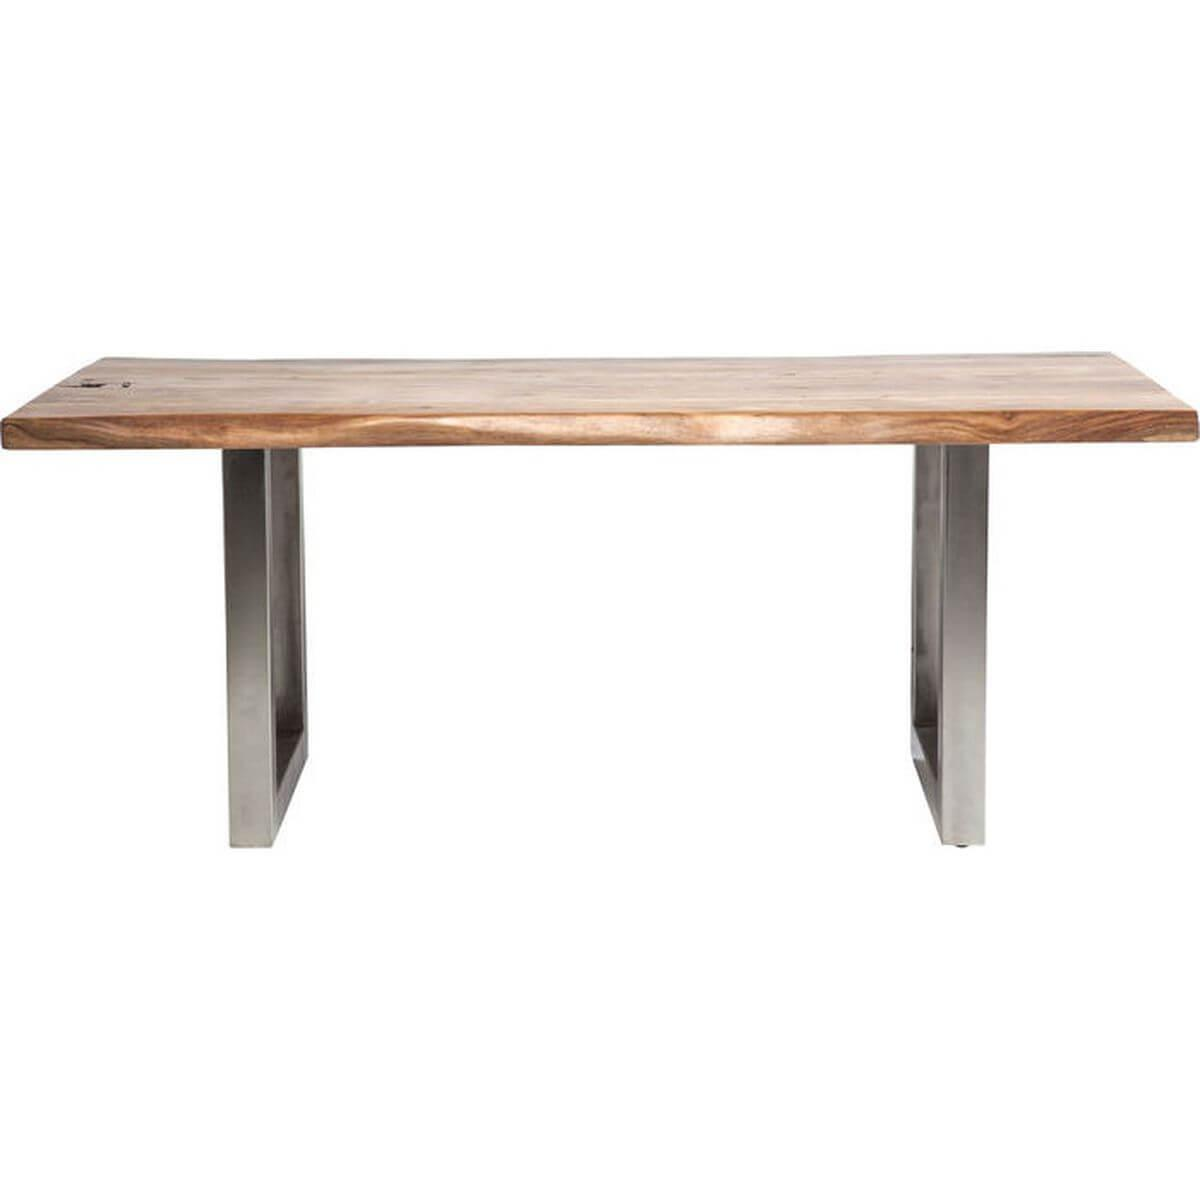 Table PURE NATURE by Kare 195x100cm 5cm